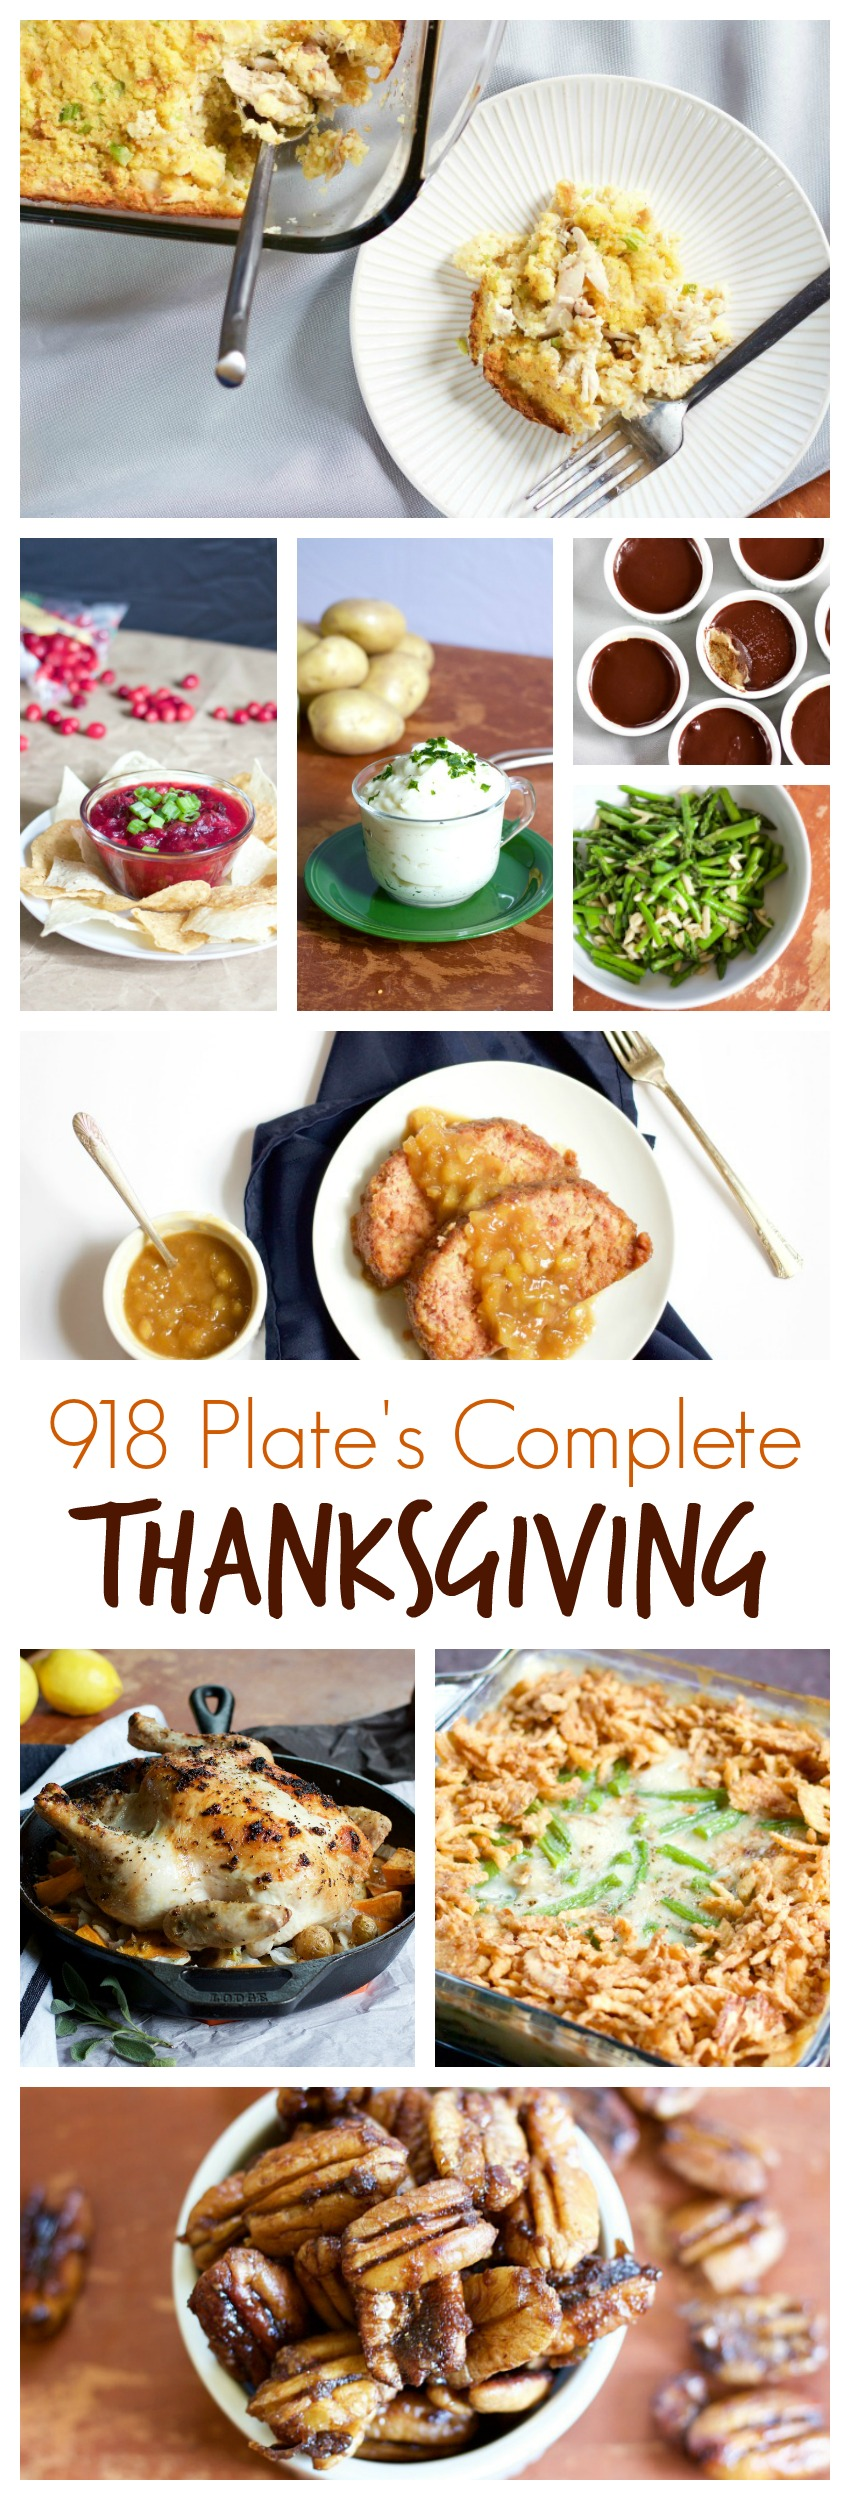 A Complete Thanksgiving by 918 Plate